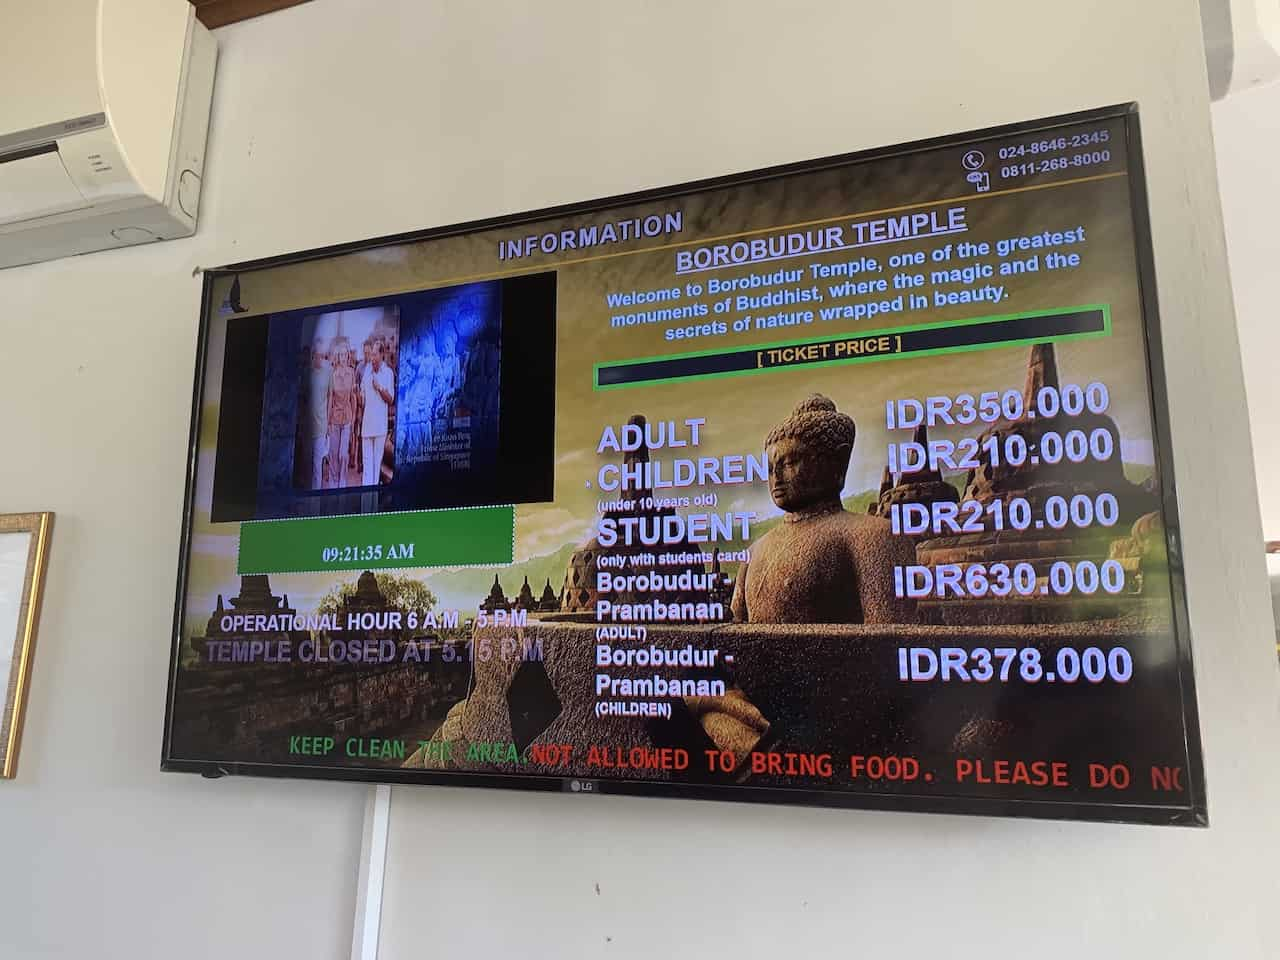 Borobudur Temple Prices and Hours